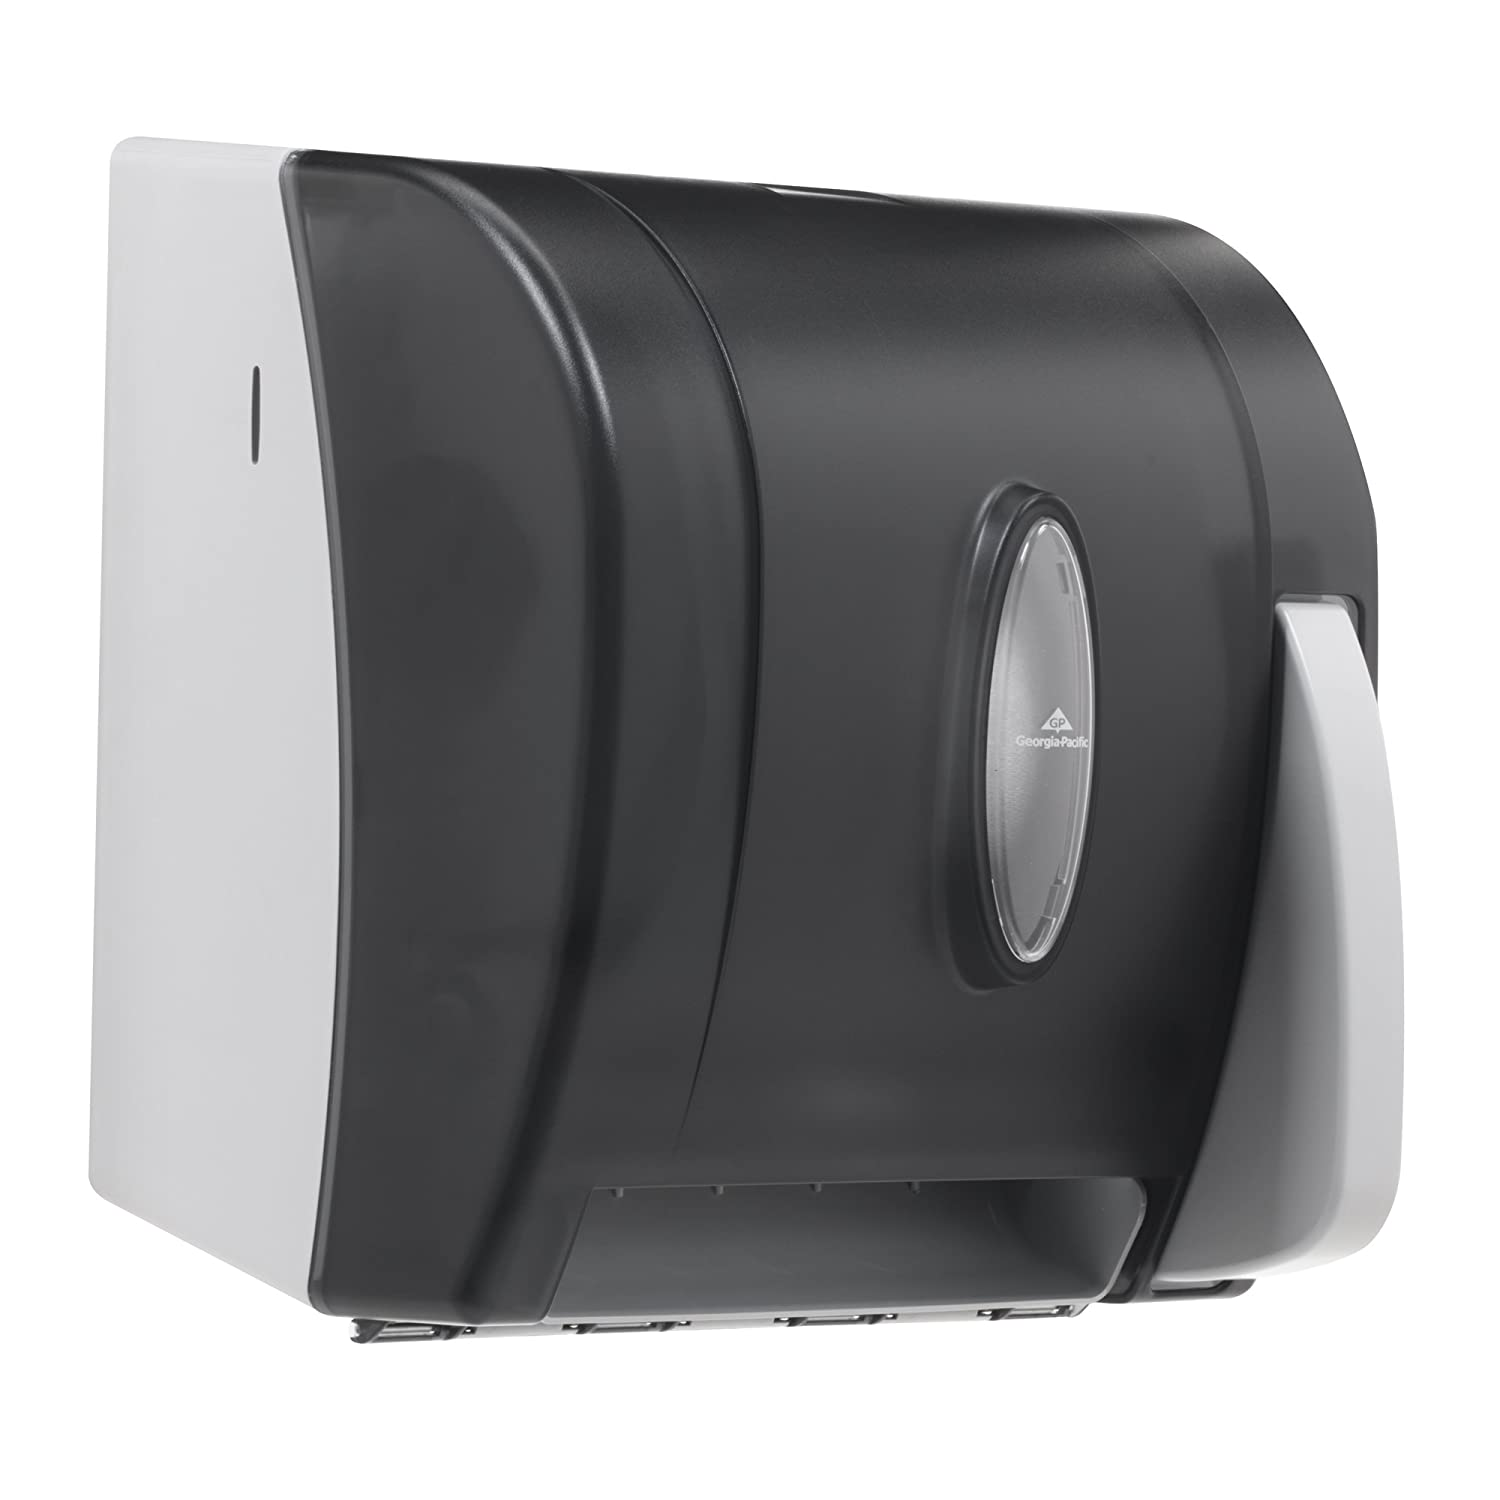 Georgia-Pacific Vista 54338 Black Hygienic Push Paddle Roll Paper Towel Dispenser, 12.75